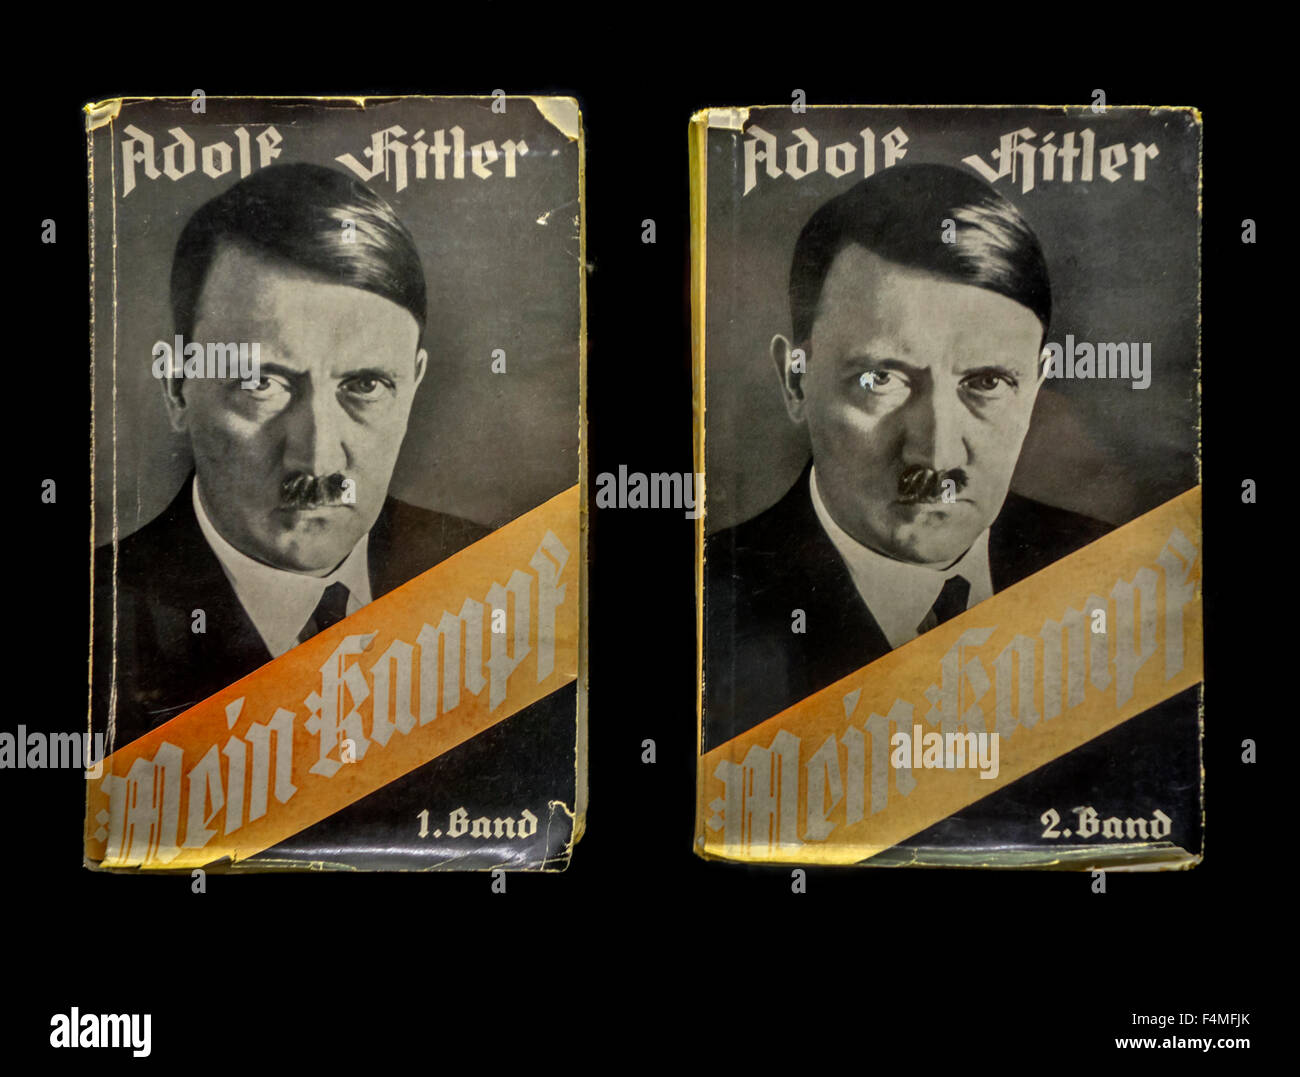 Volume 1 and 2 of the German book Mein Kampf / My Struggle, autobiographical manifesto by Nazi leader Adolf Hitler - Stock Image